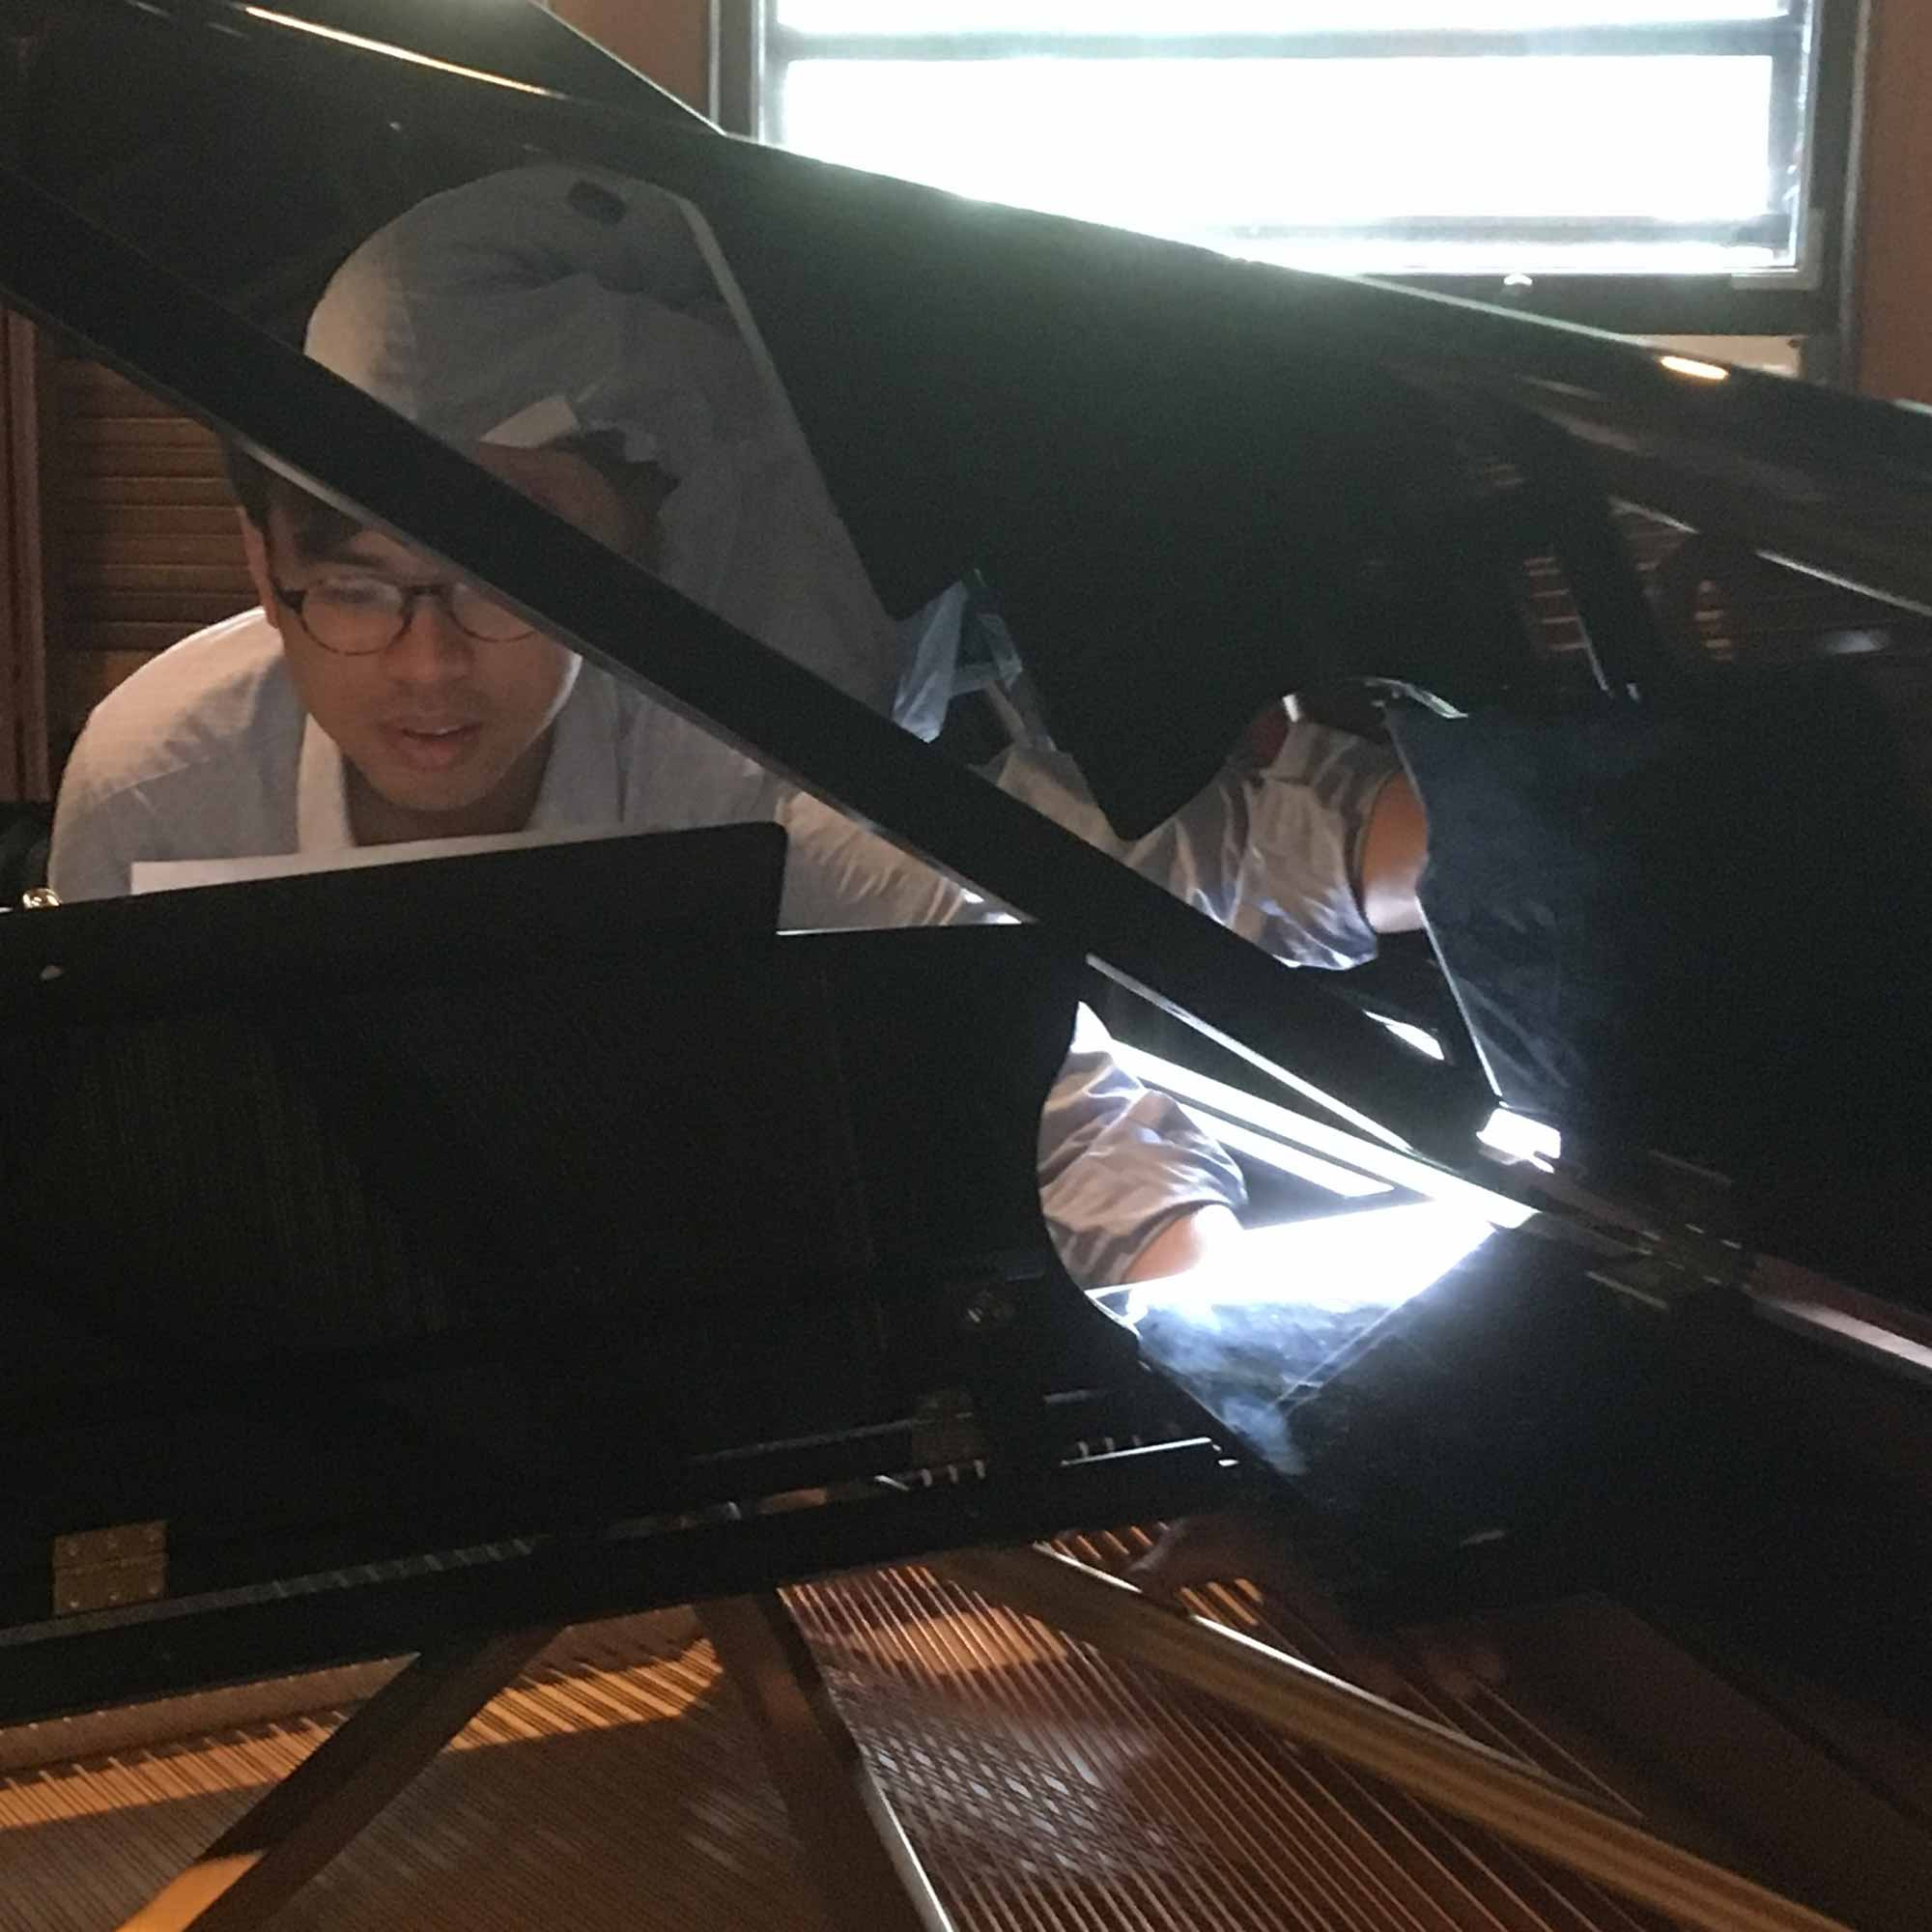 Pianist reaching to play inside piano